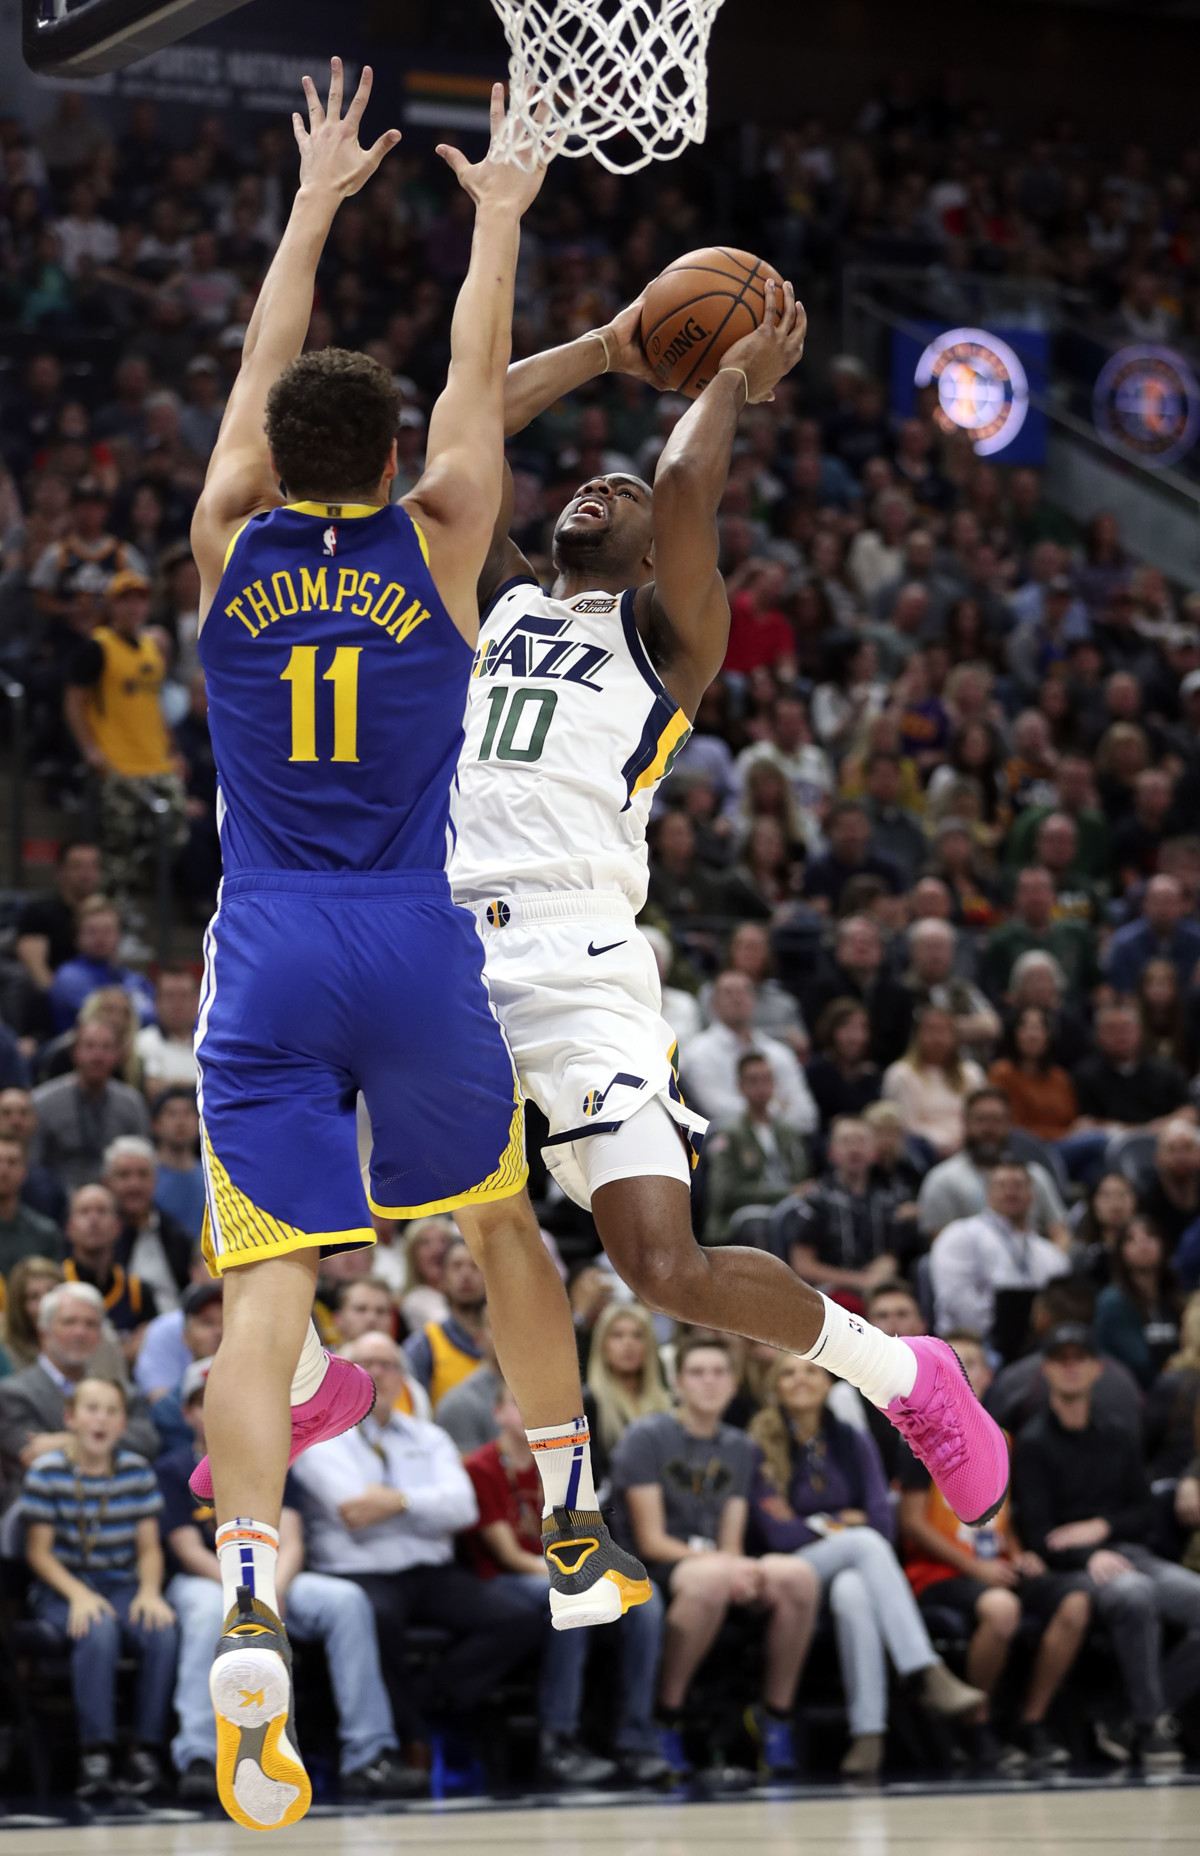 605cae09f76 Utah Jazz guard Alec Burks honors fiancé's cousin with hot pink sneakers  for Breast Cancer Awareness Month